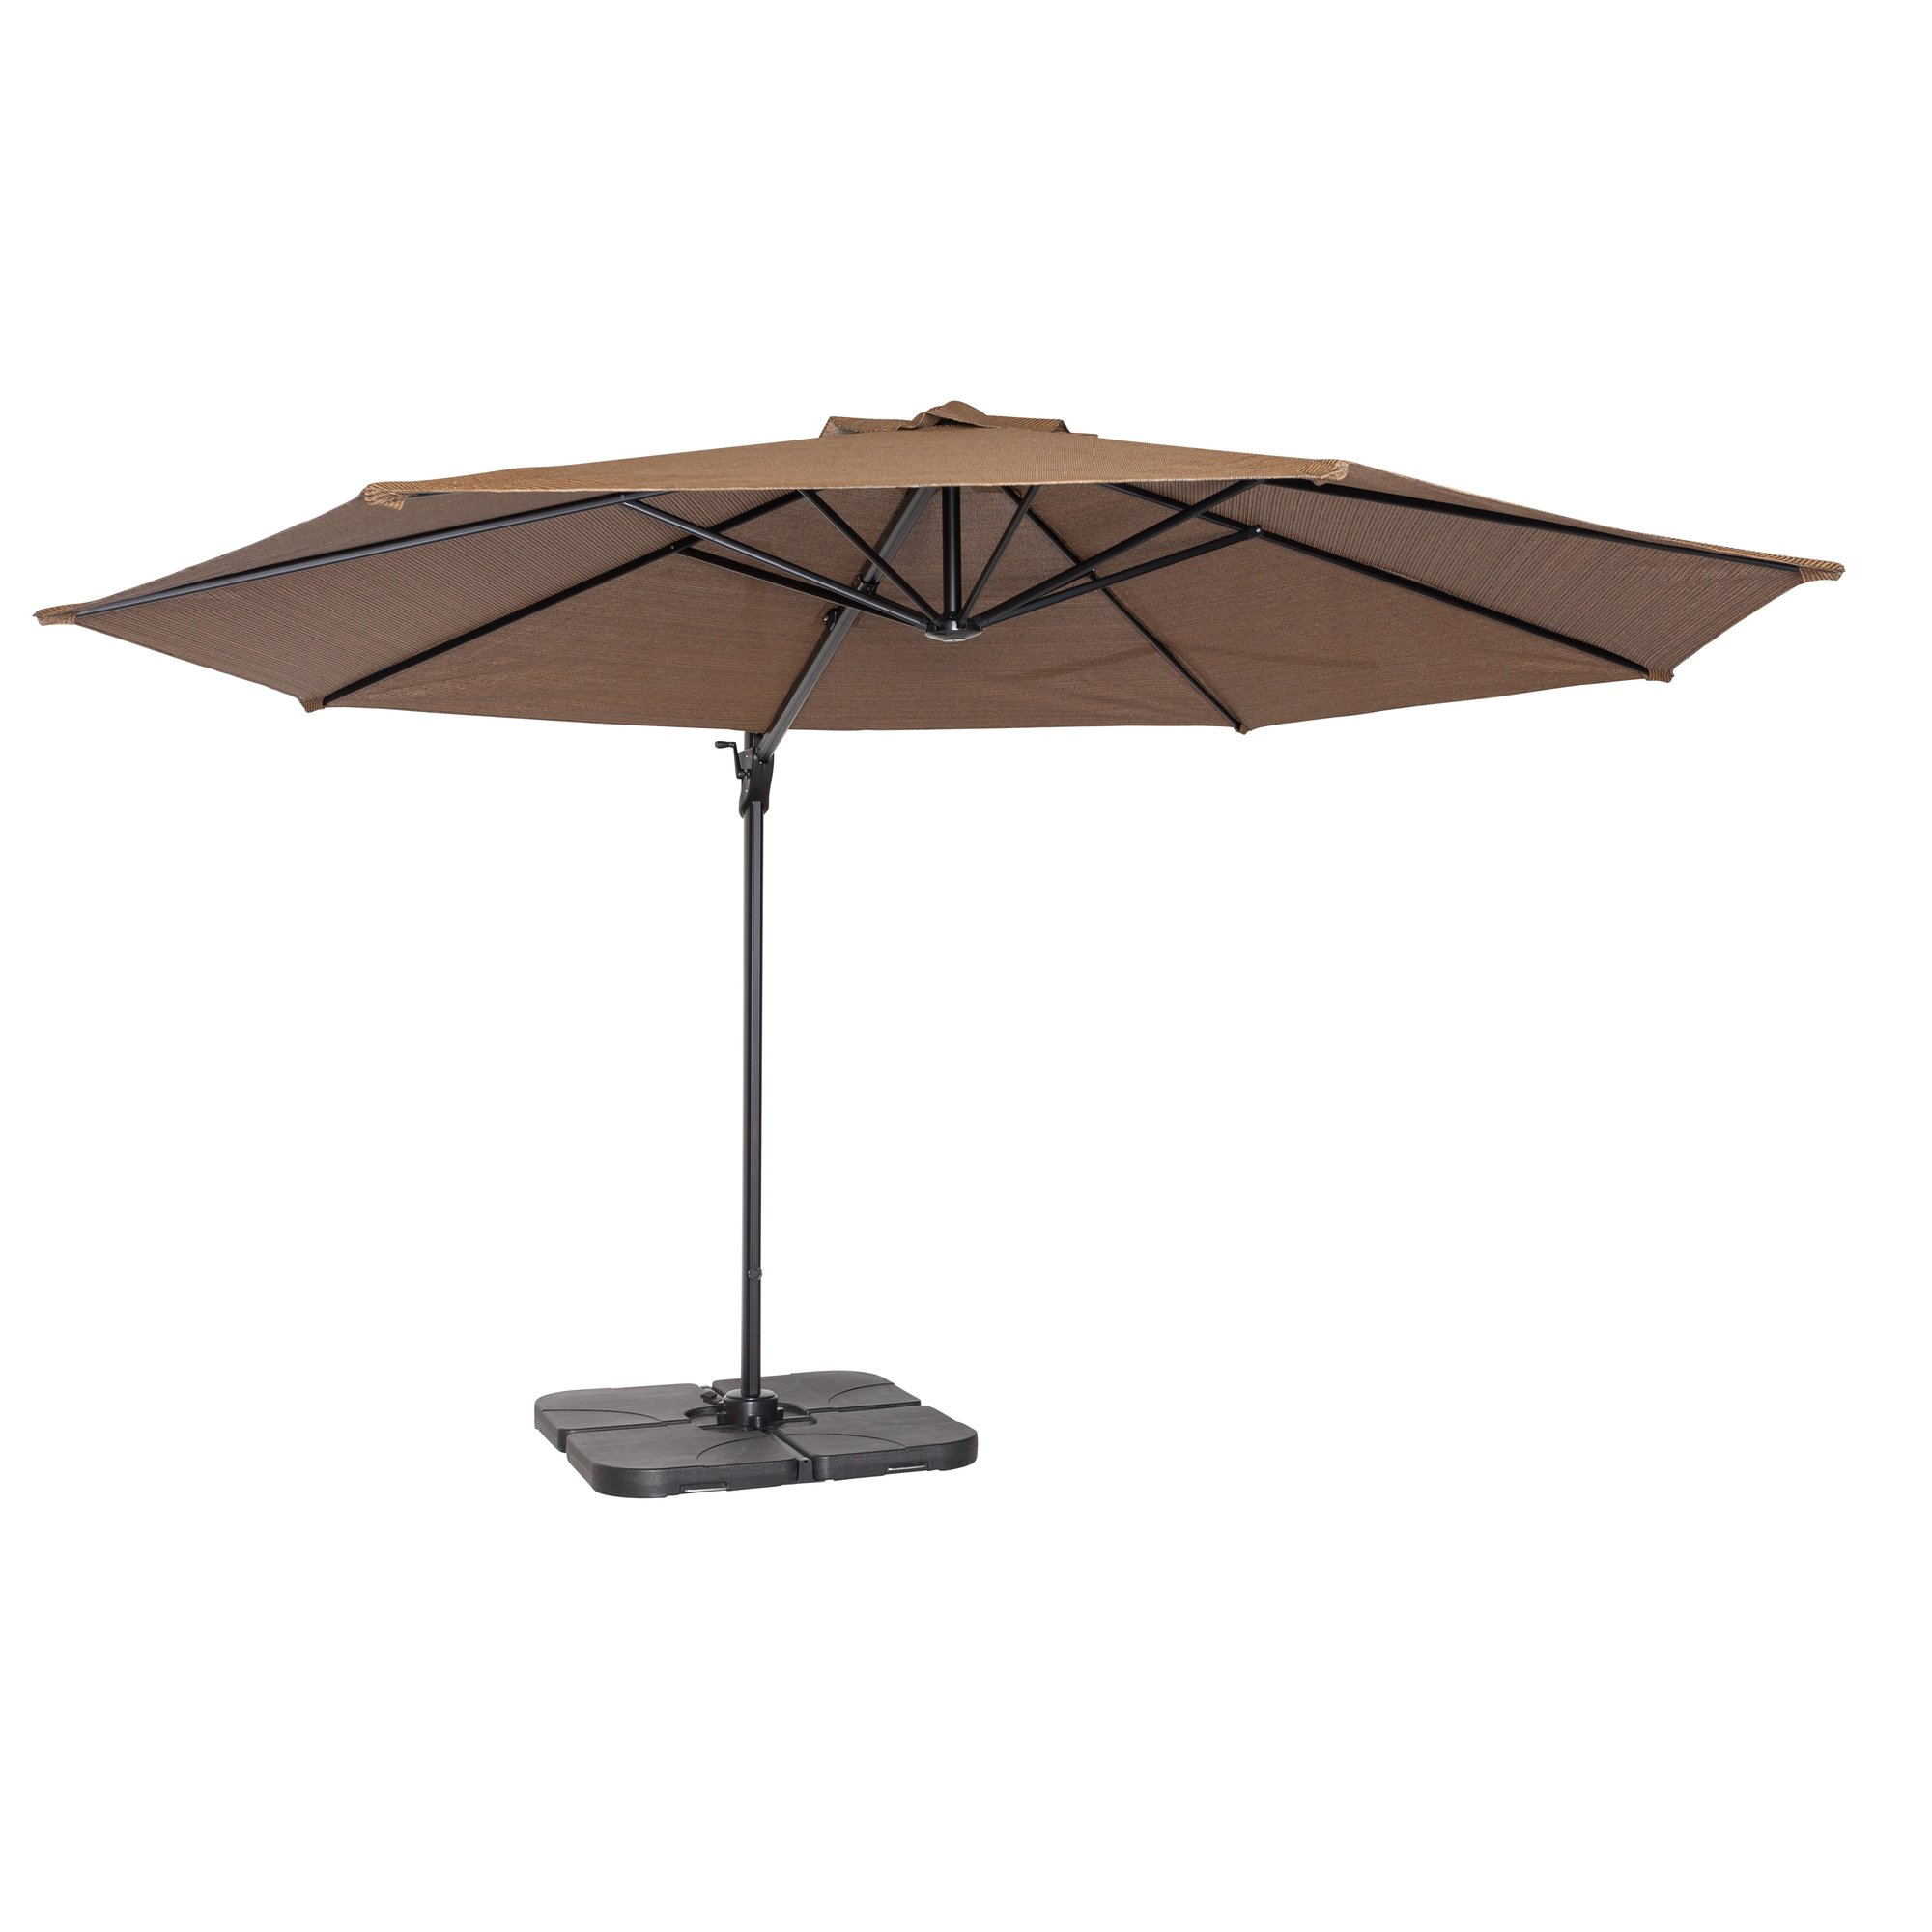 12' Cantilever Umbrella